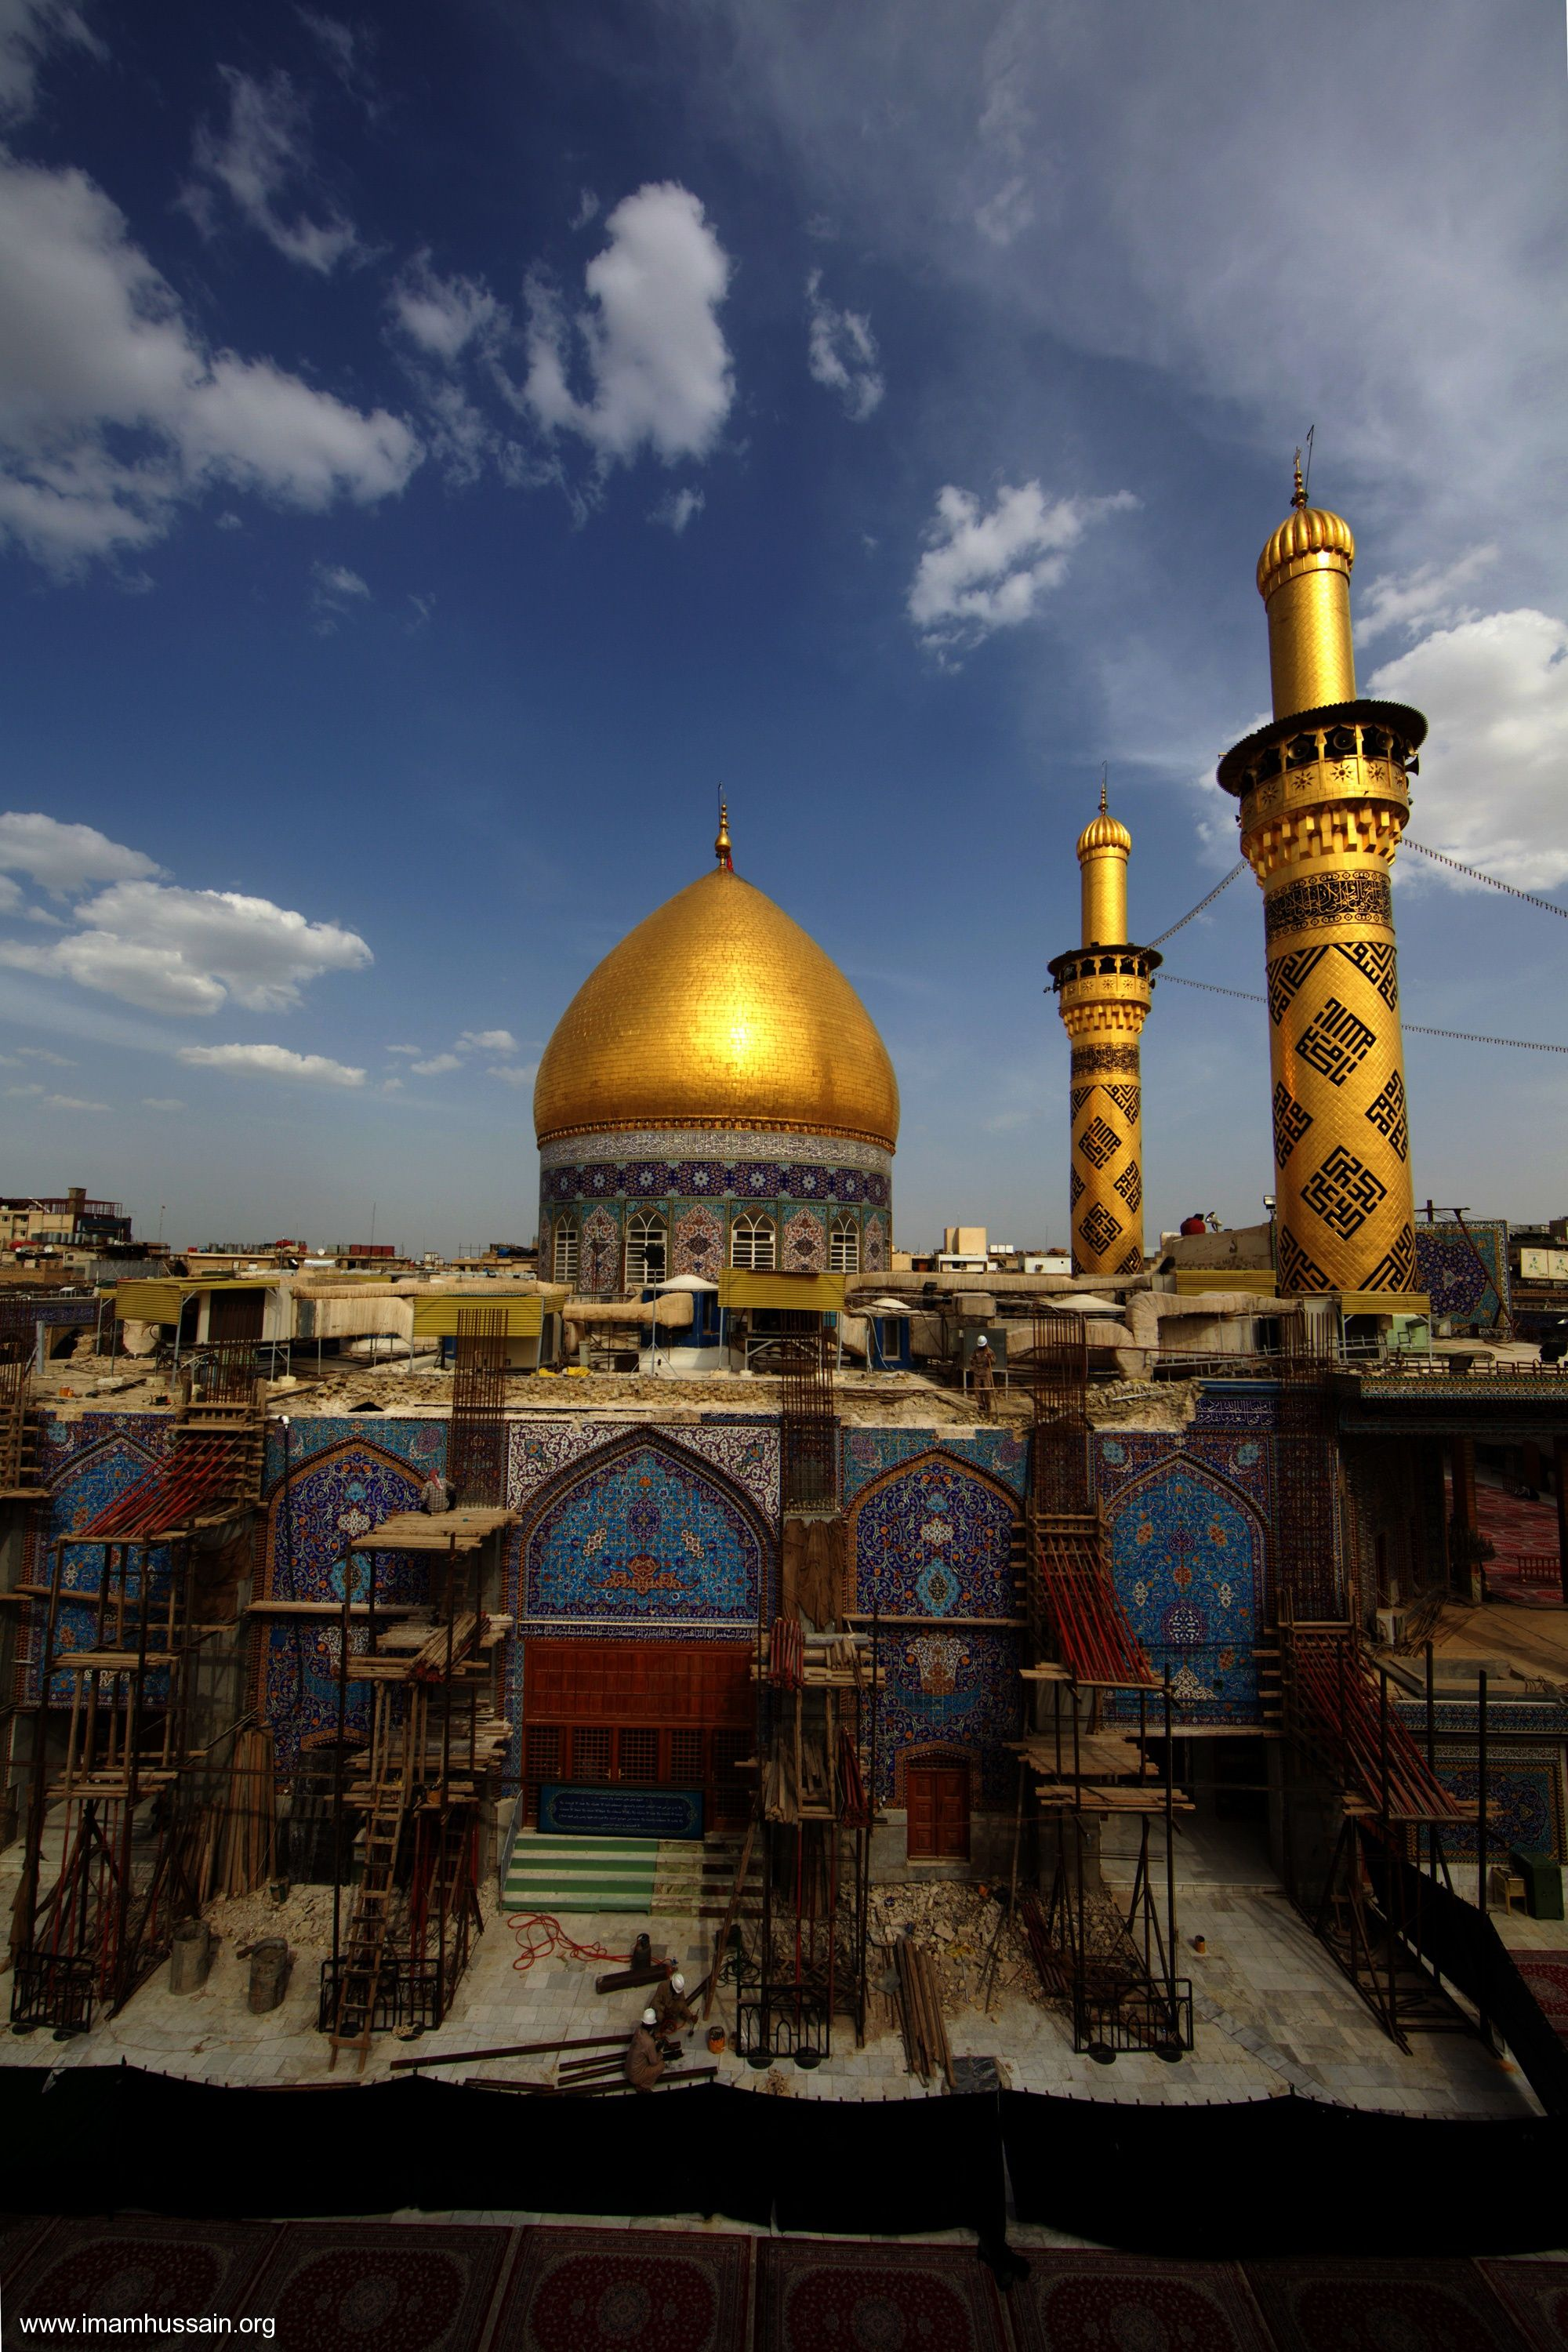 Maula Ali Shrine Wallpaper: Shrine Of Abbas Ibn Ali In Karbala